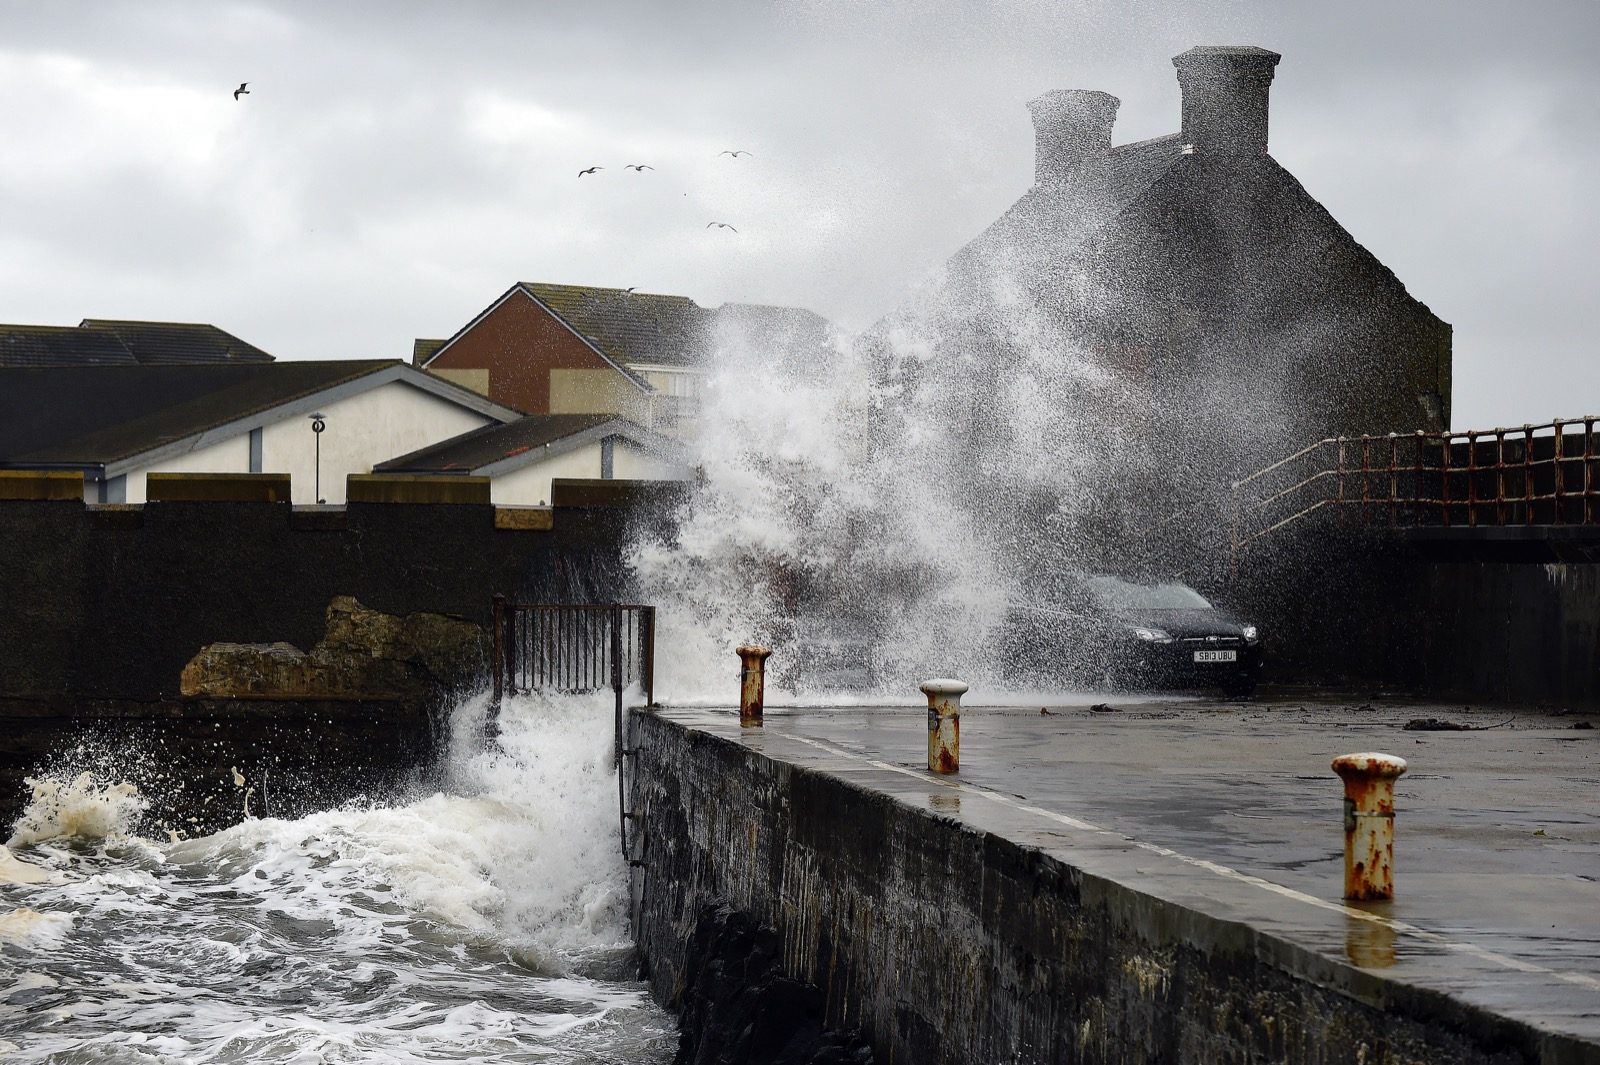 Waves crash as the remnants of Storm Ophelia hit Saltcoats, on the west coast of Scotland. ANDY BUCHANAN/AFP/Getty Images